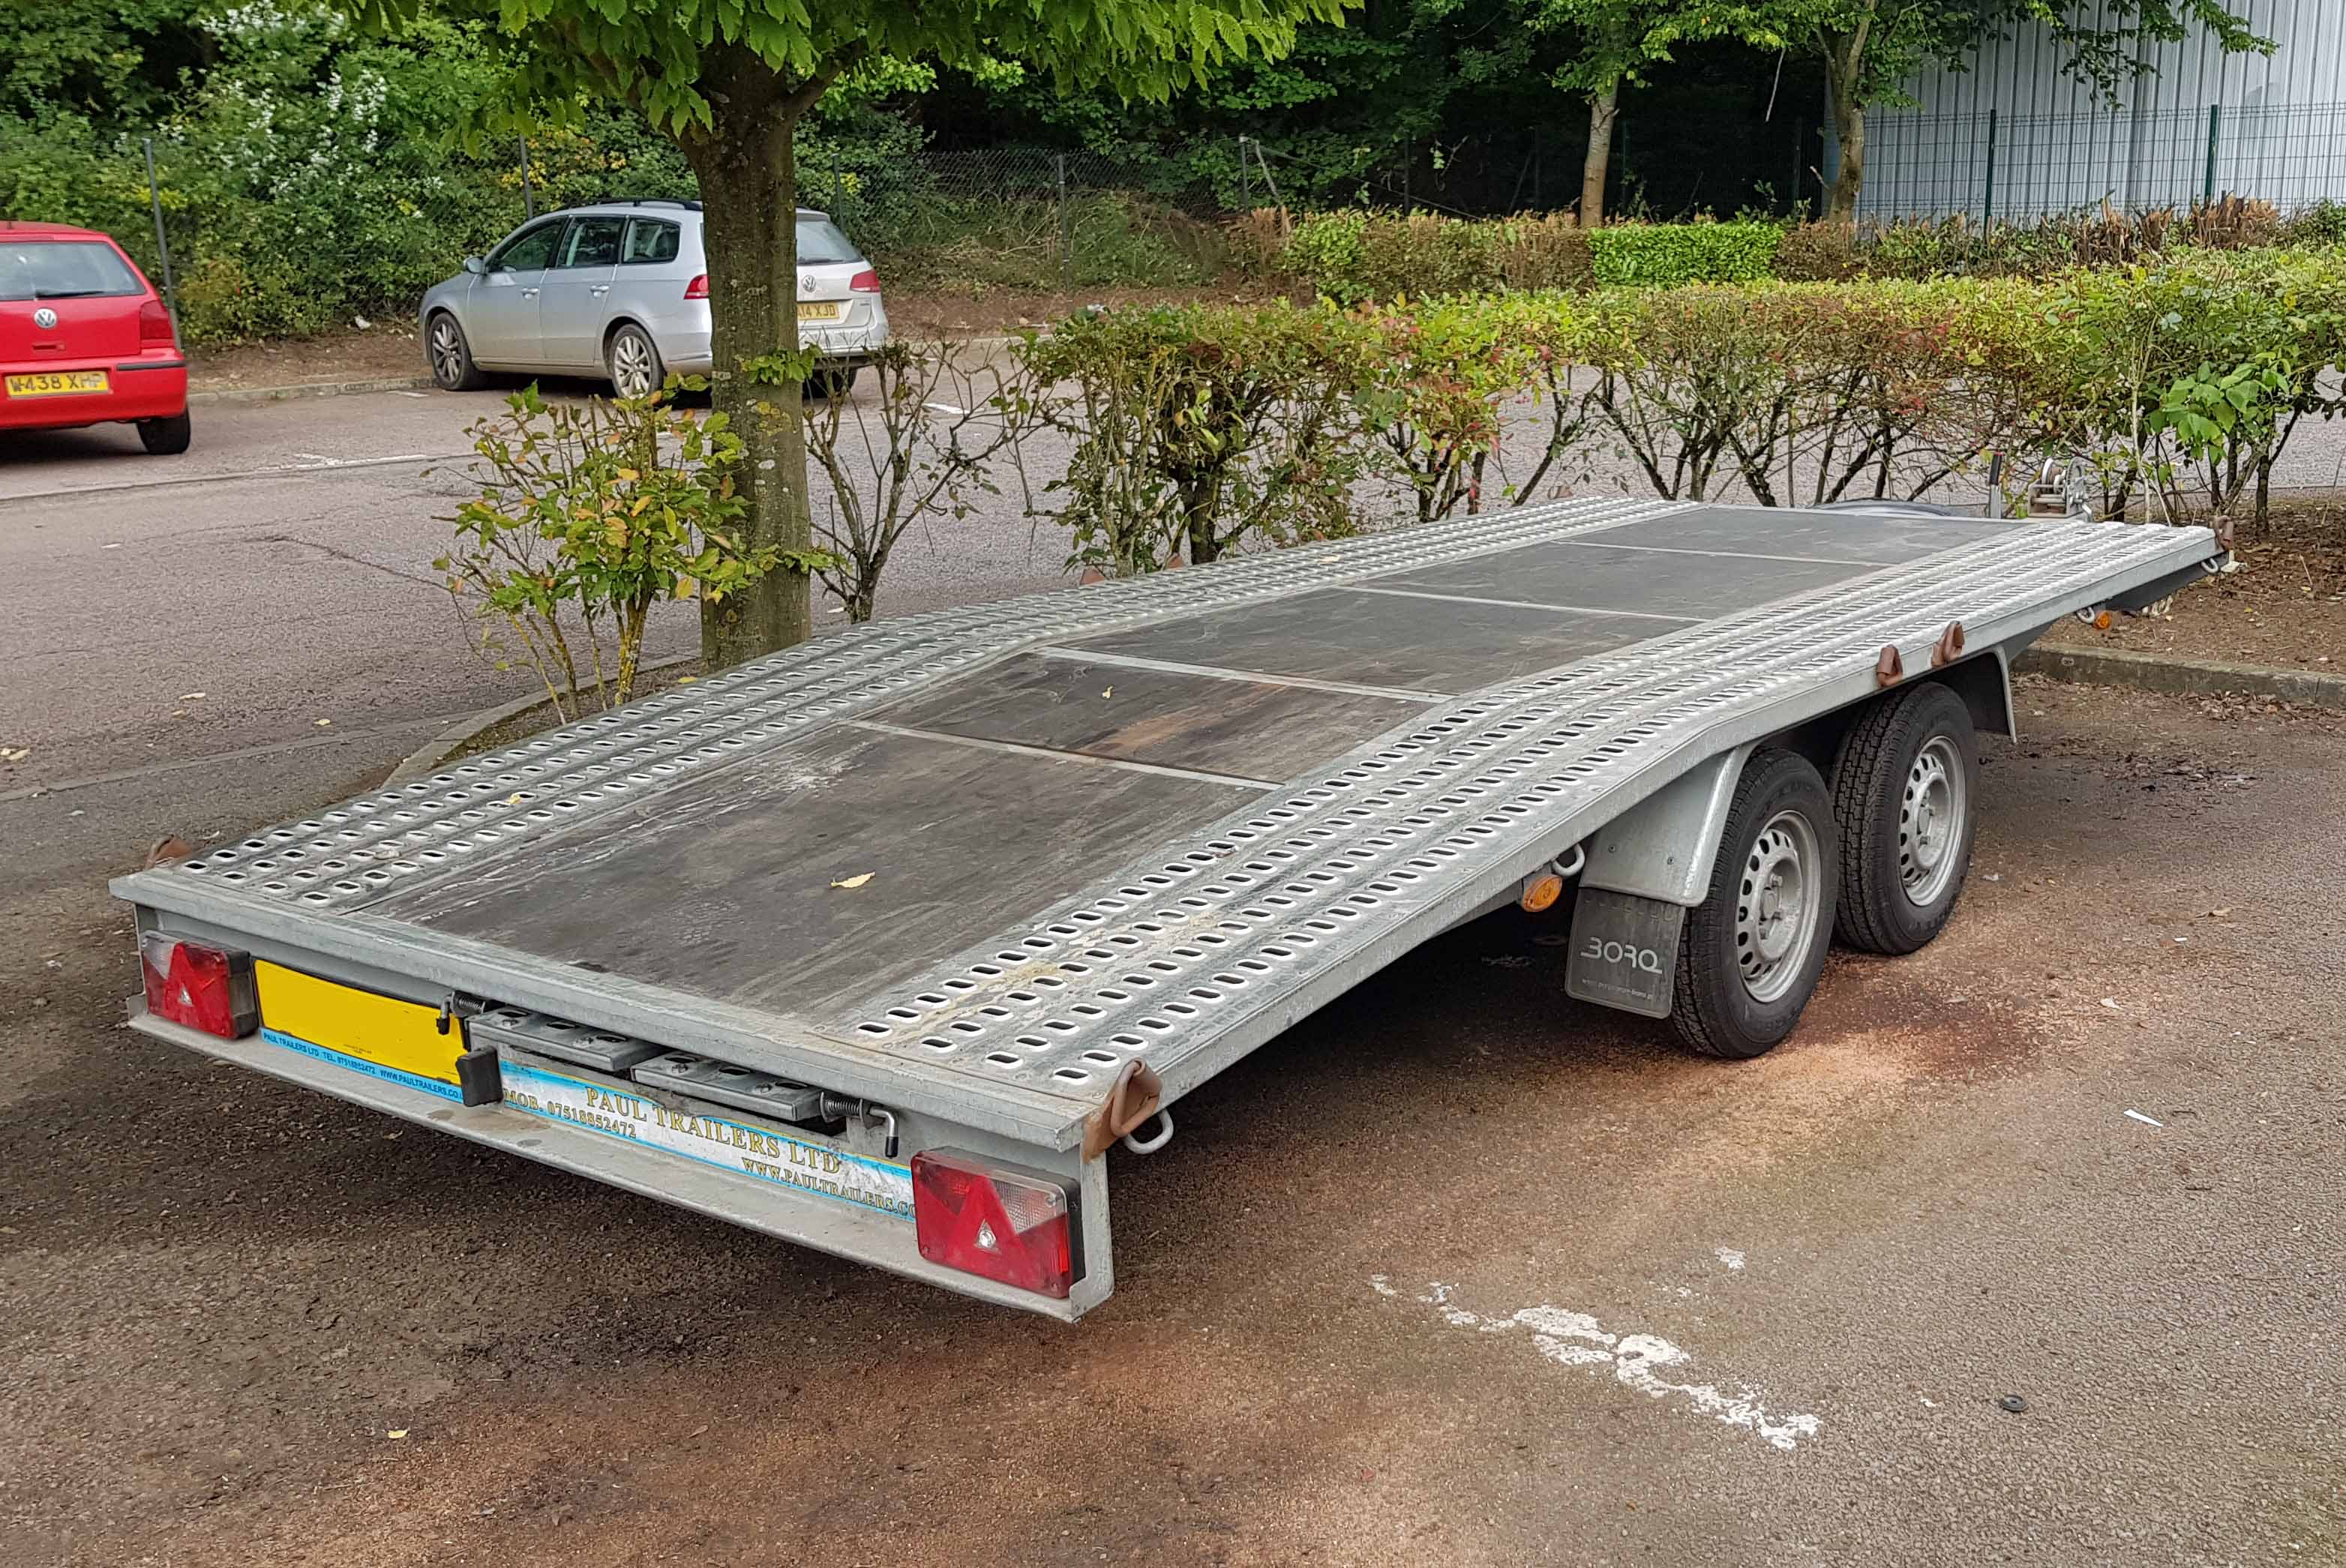 Lot 36 - BORO Model E946.0039 Galvanised Steel Beavertail Twin Axle 4.5M Long Flatbed Vehicle Trailer,